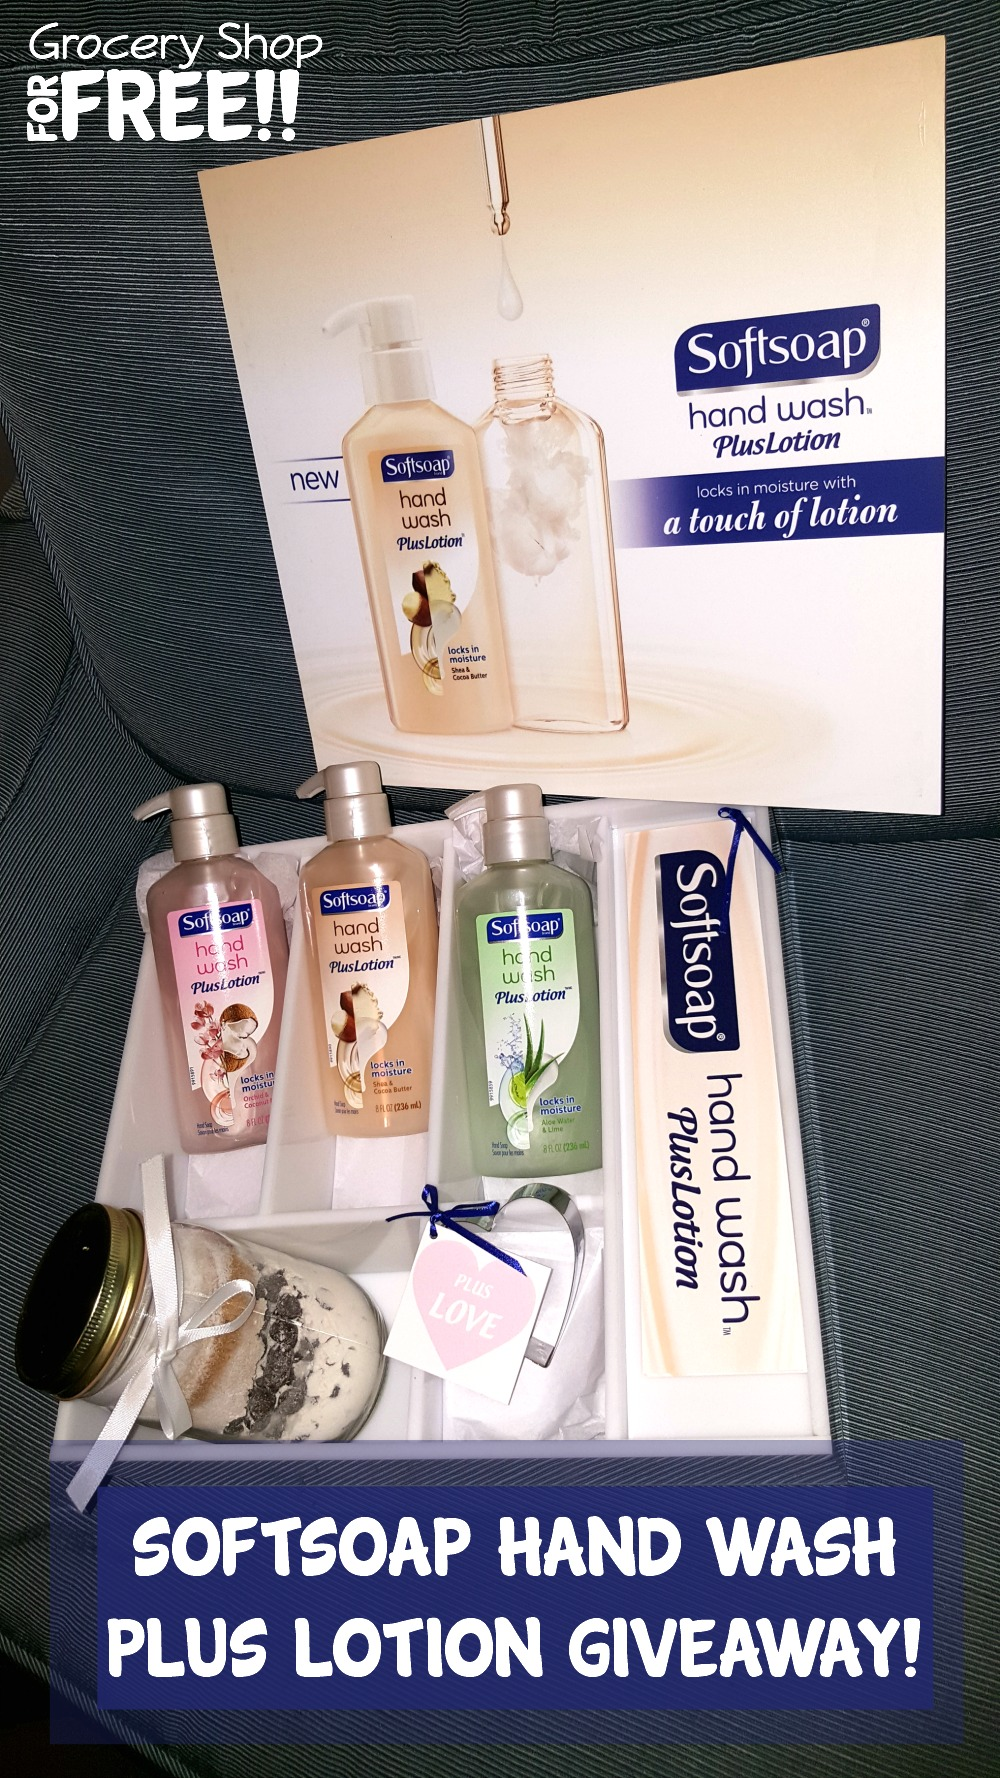 Softsoap Hand Wash Plus Lotion Giveaway!